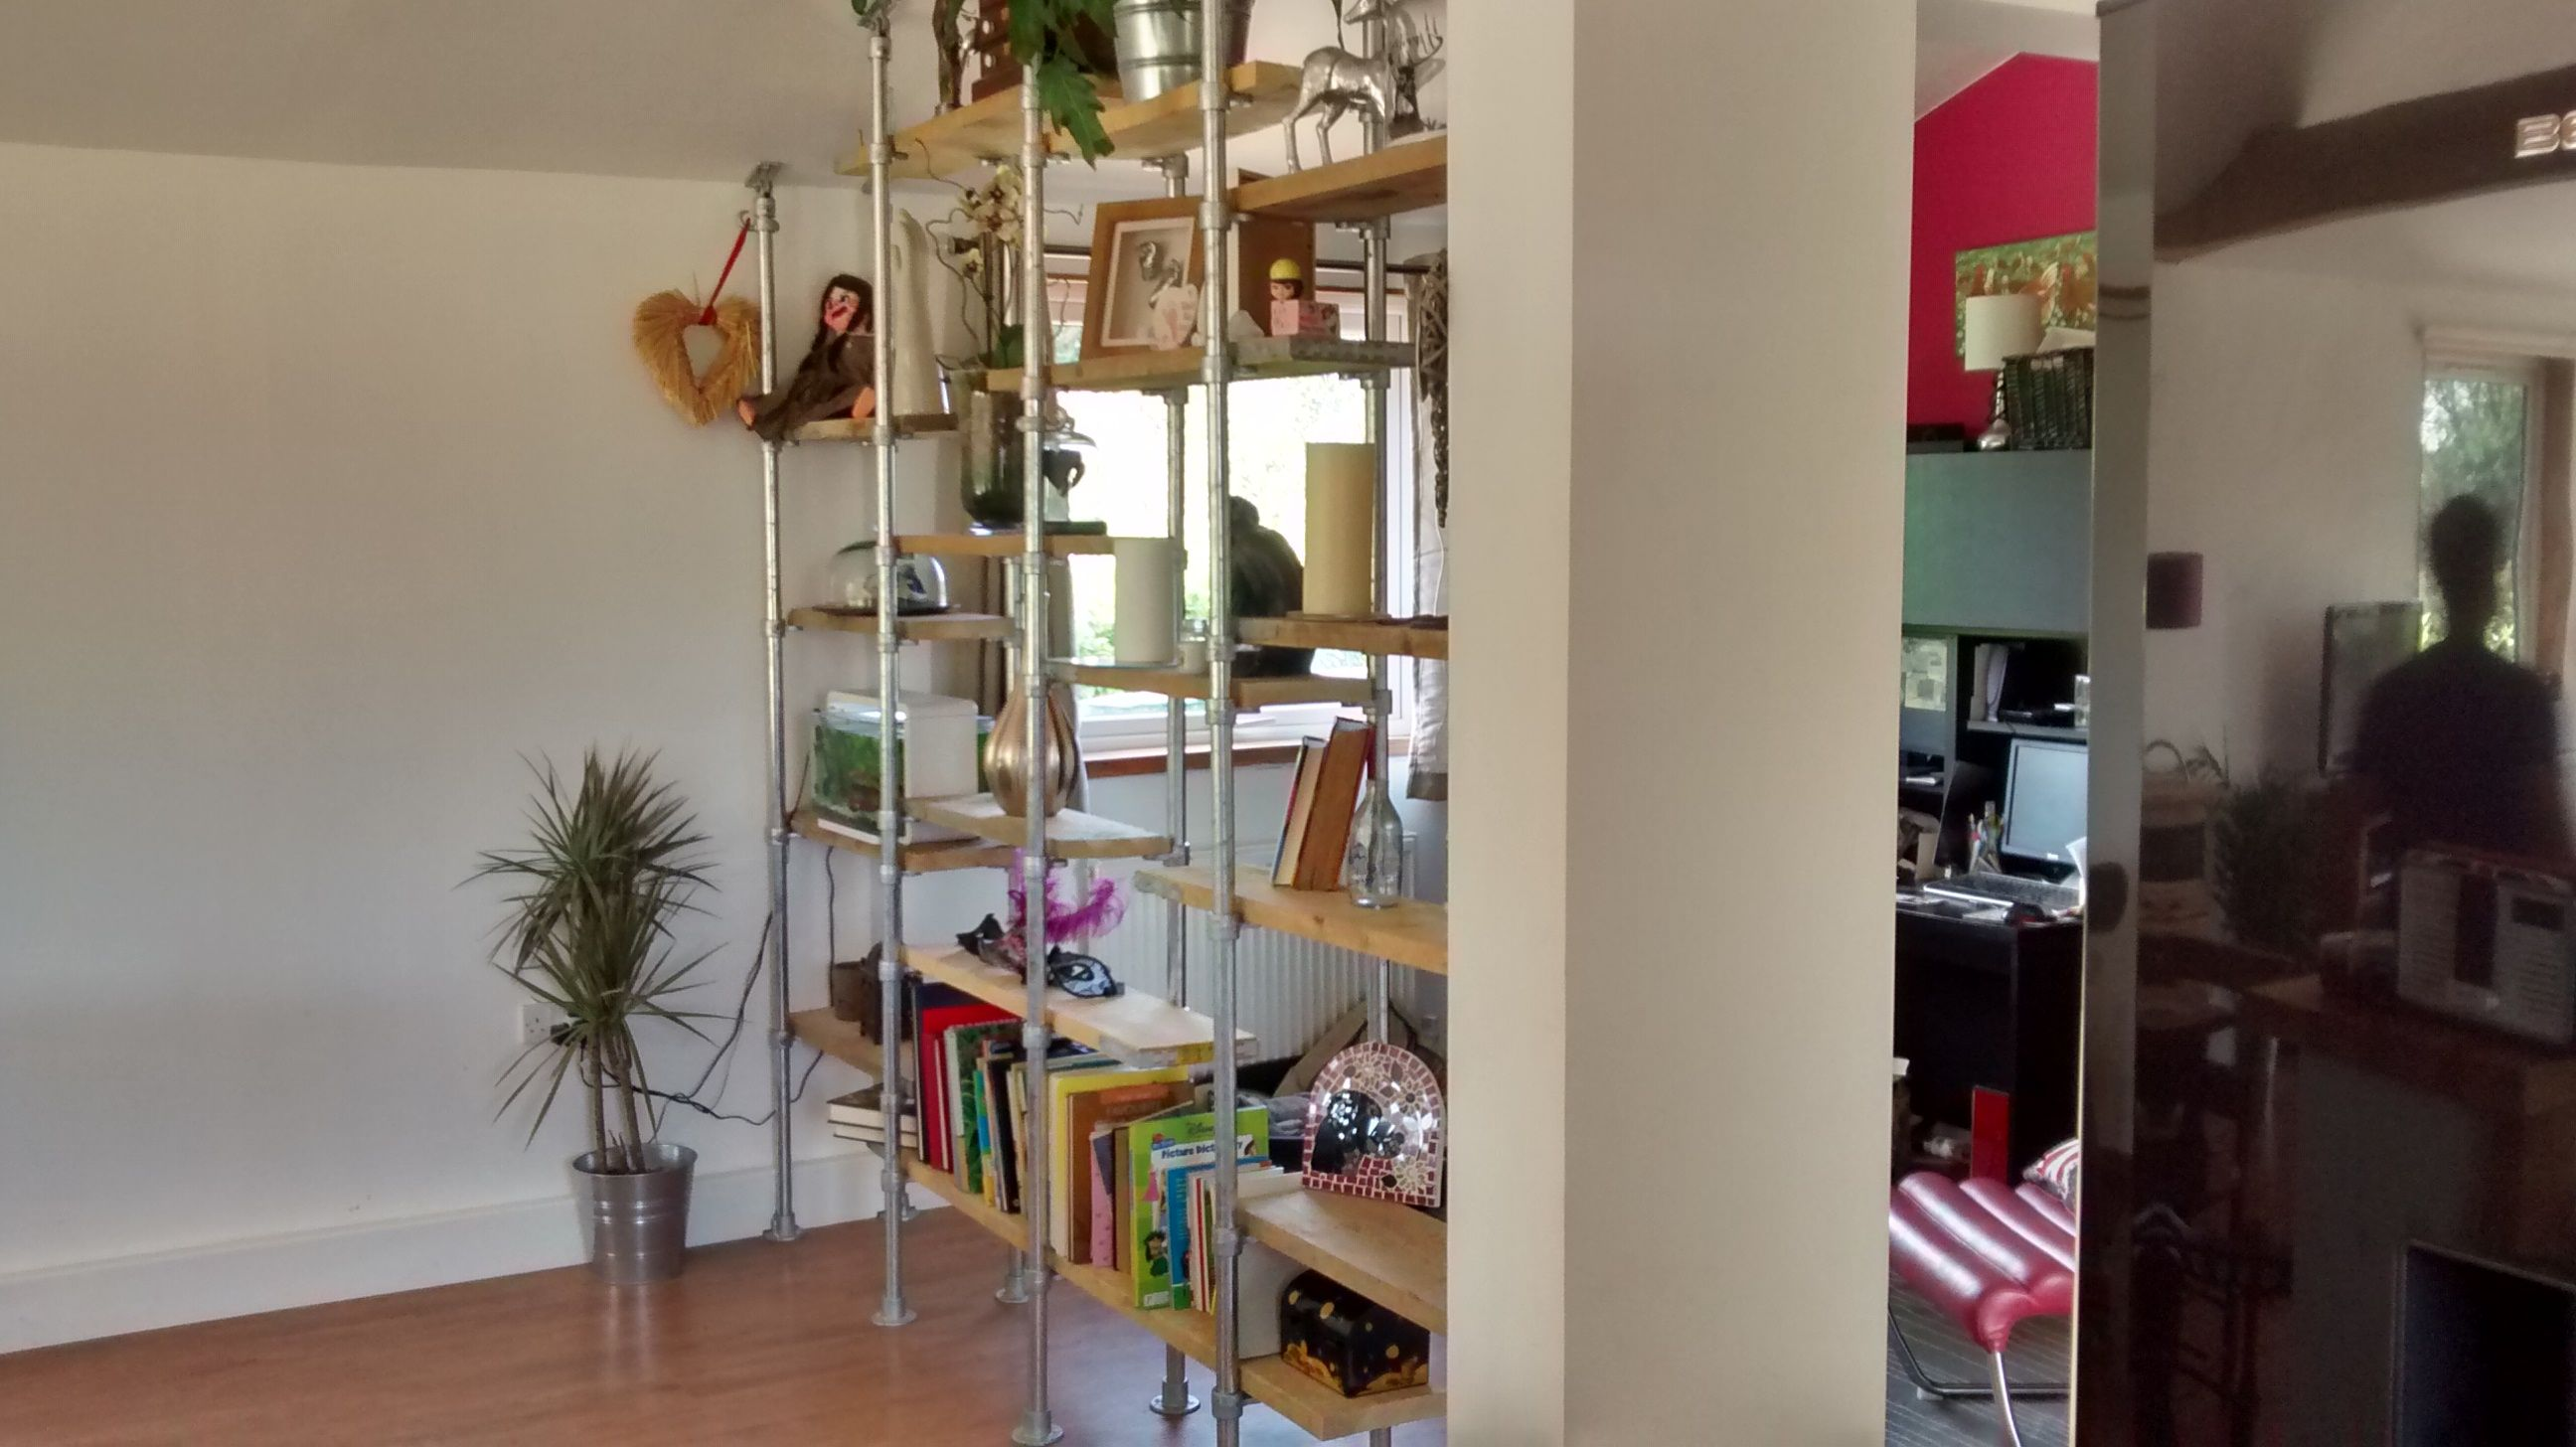 DIY industrial floor to ceiling shelving system using Kee